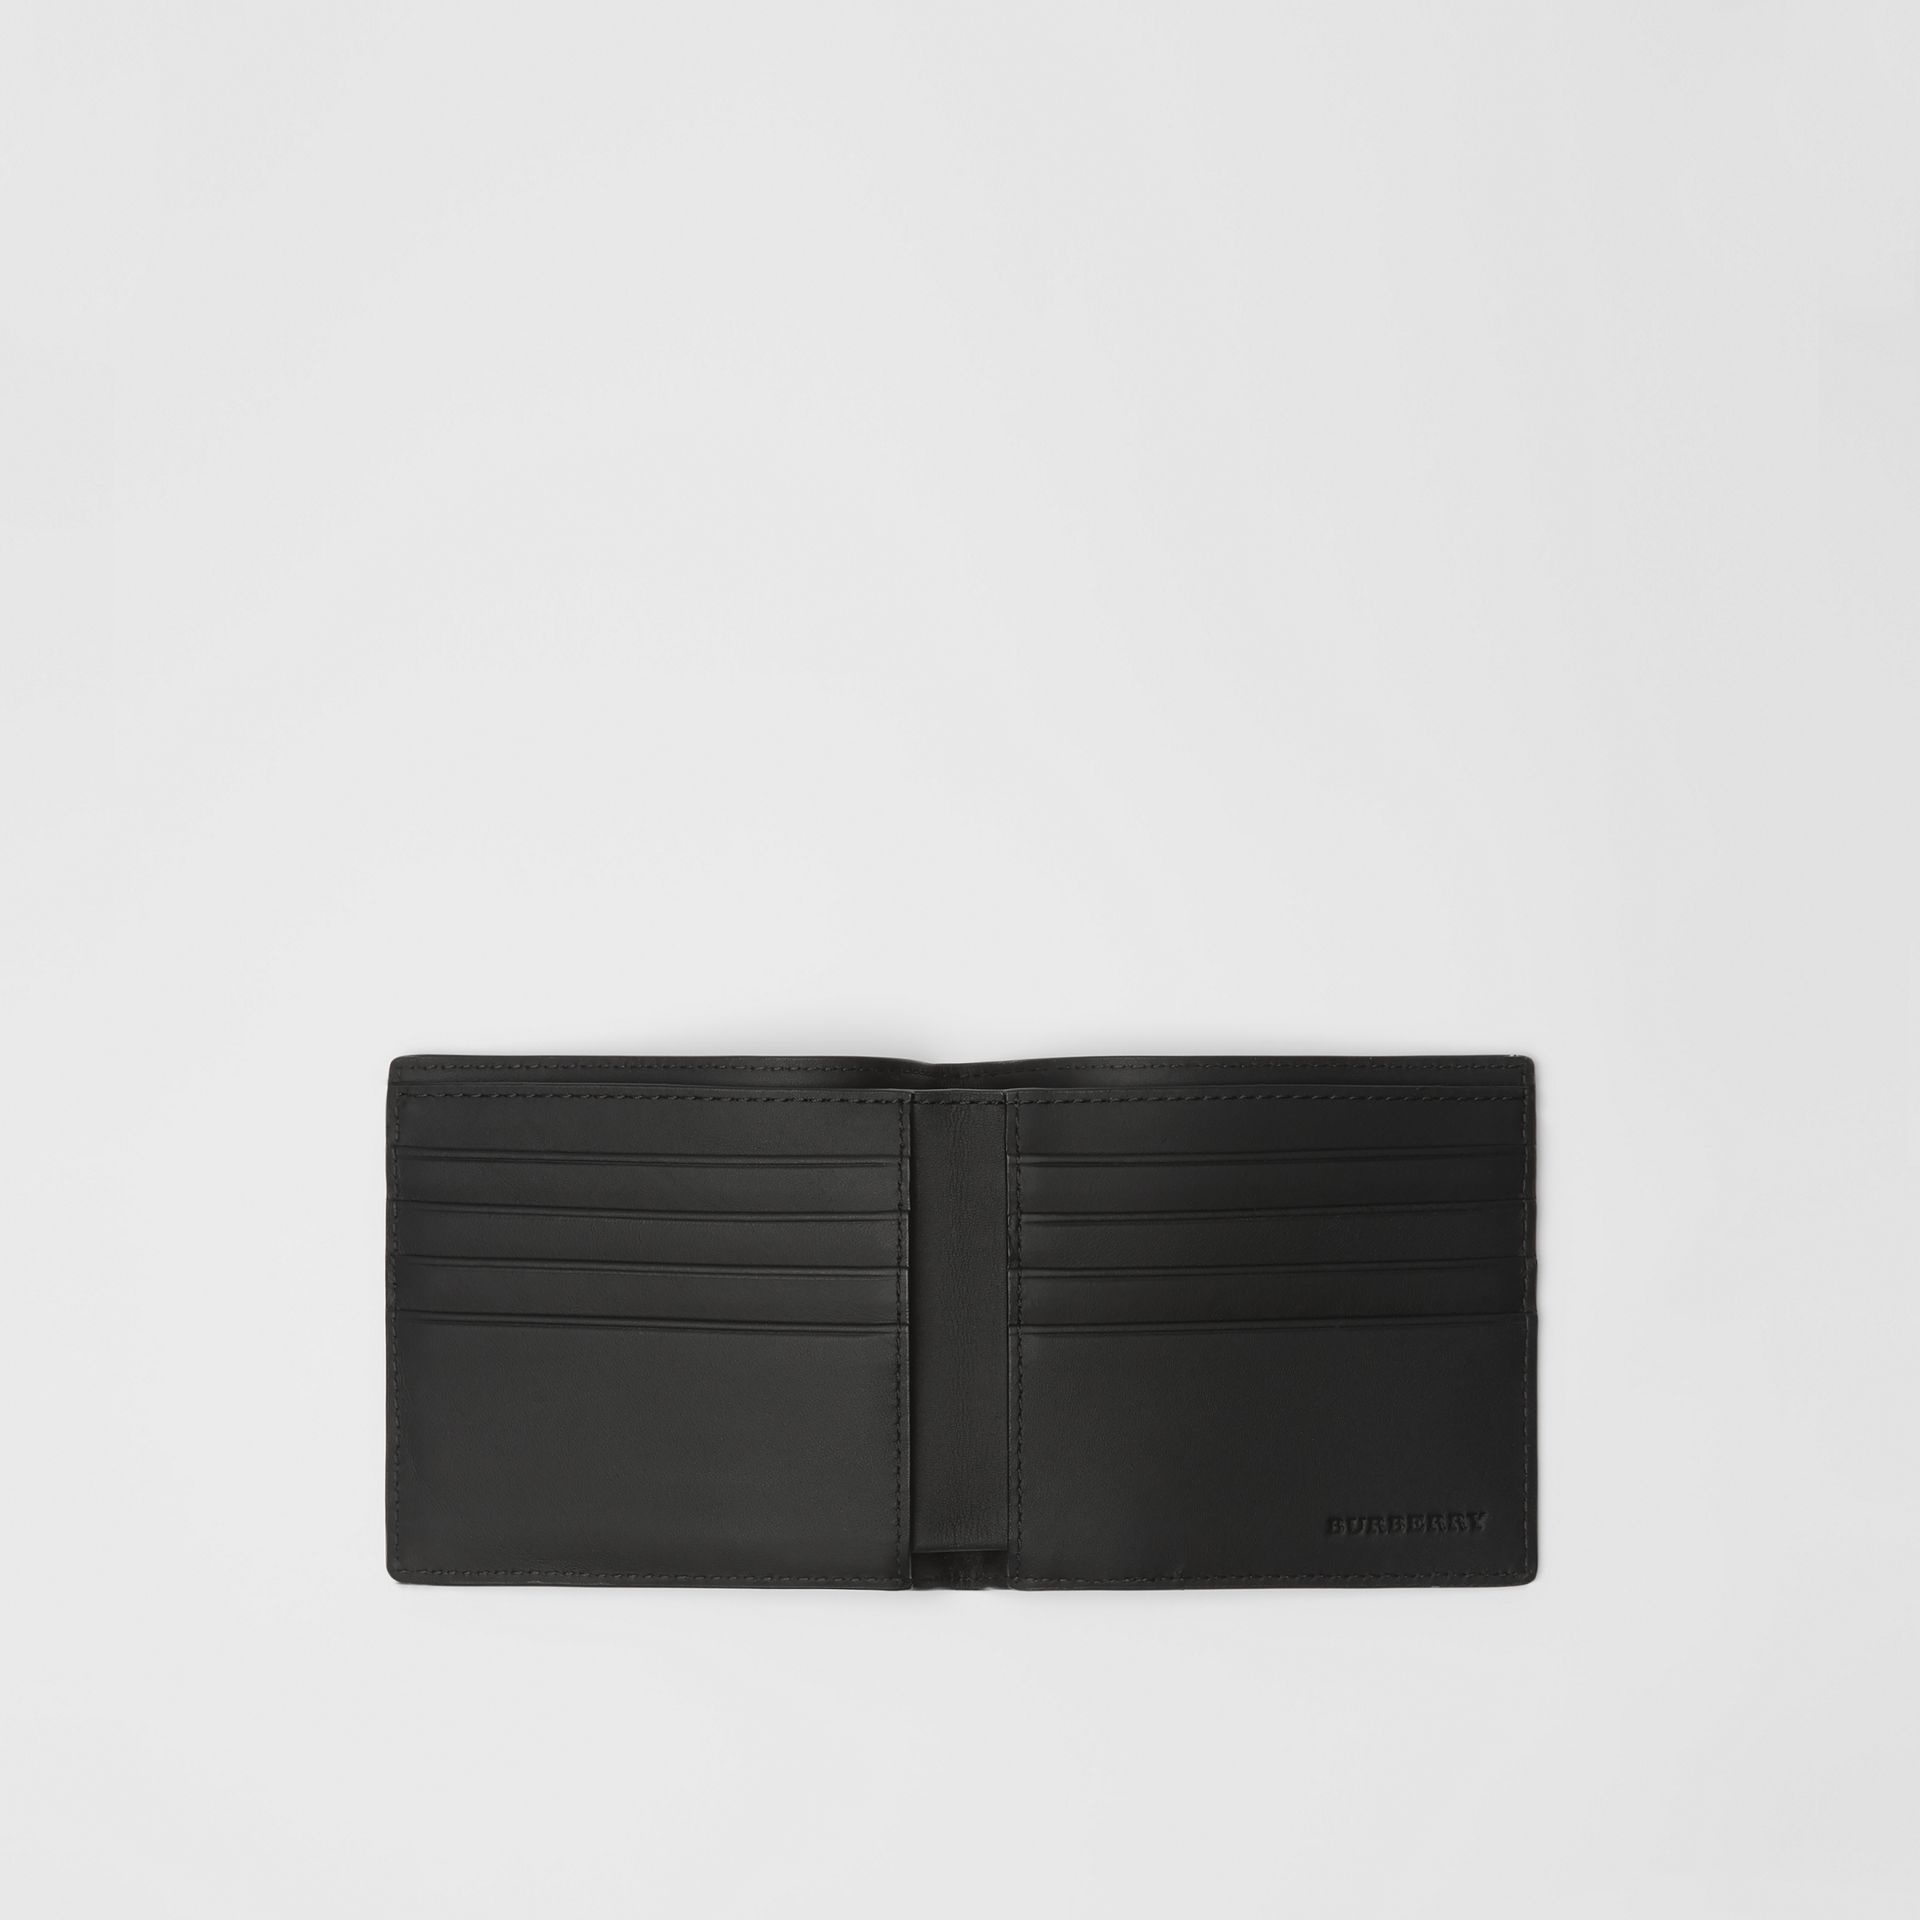 EKD London Check International Bifold Wallet in Charcoal/black - Men | Burberry Canada - gallery image 2